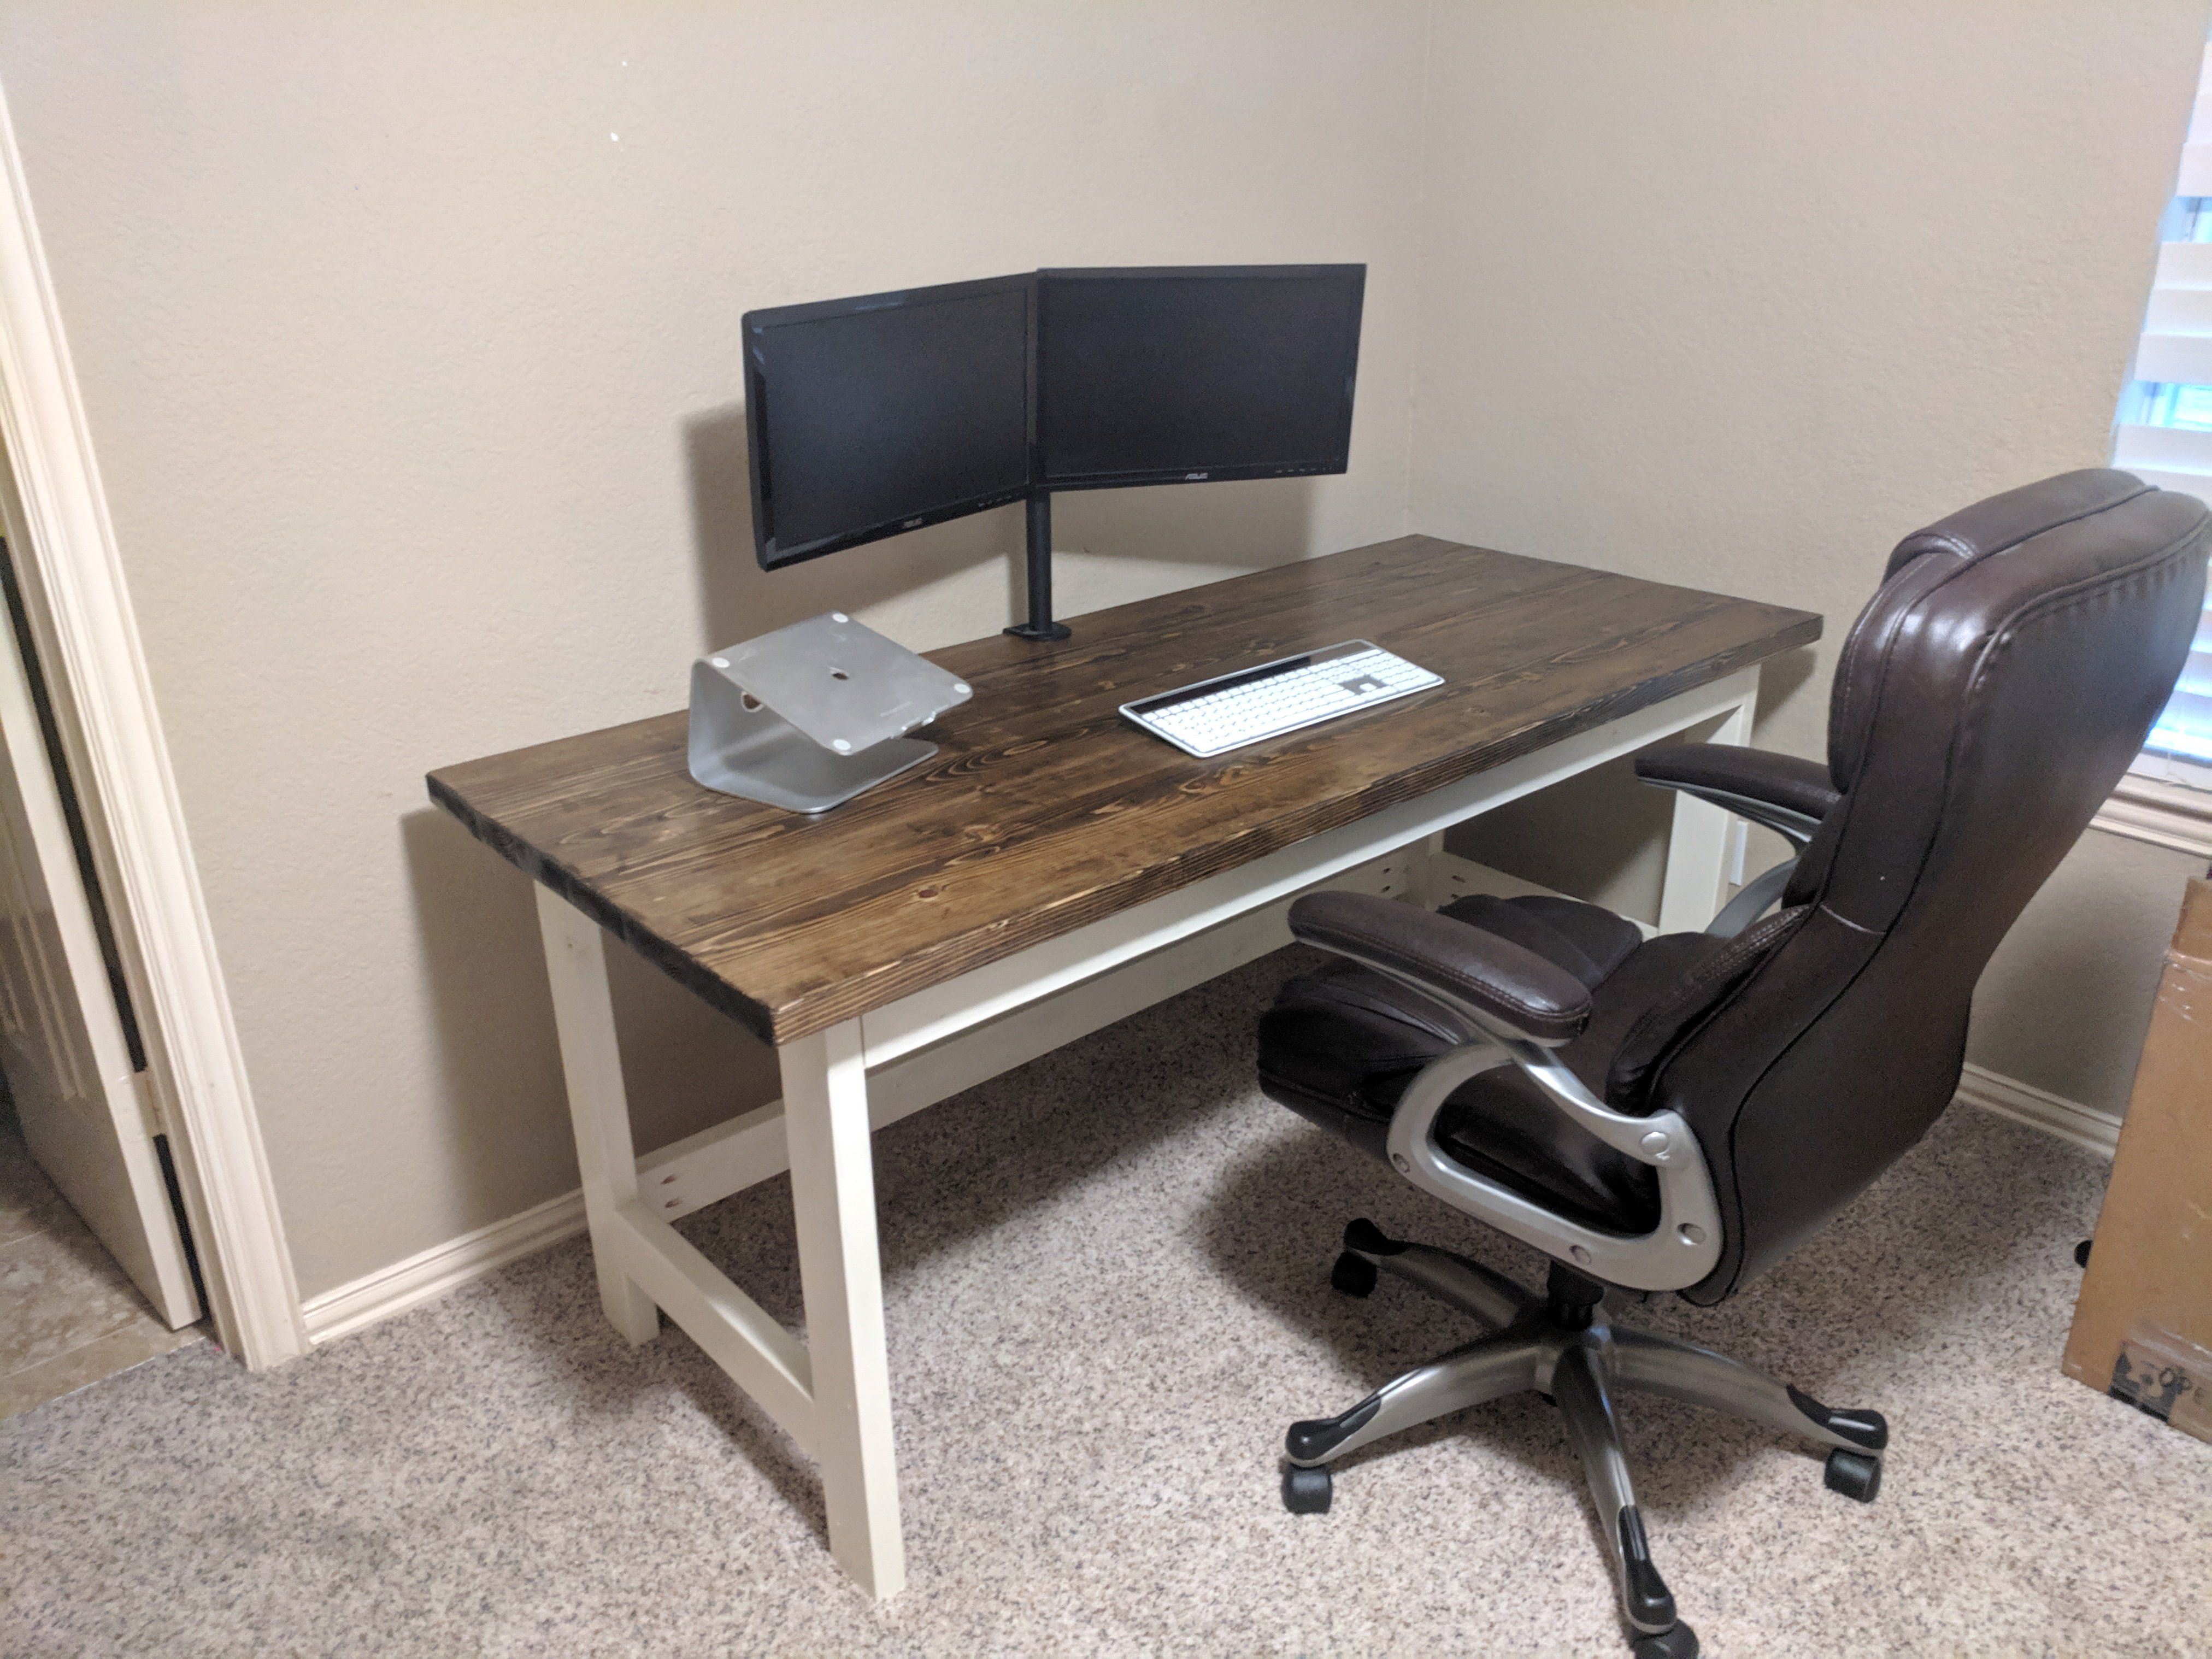 I Made A Simple And Cheap Desk Cheap Desk Diy Sweepstakes Cute Diy Projects